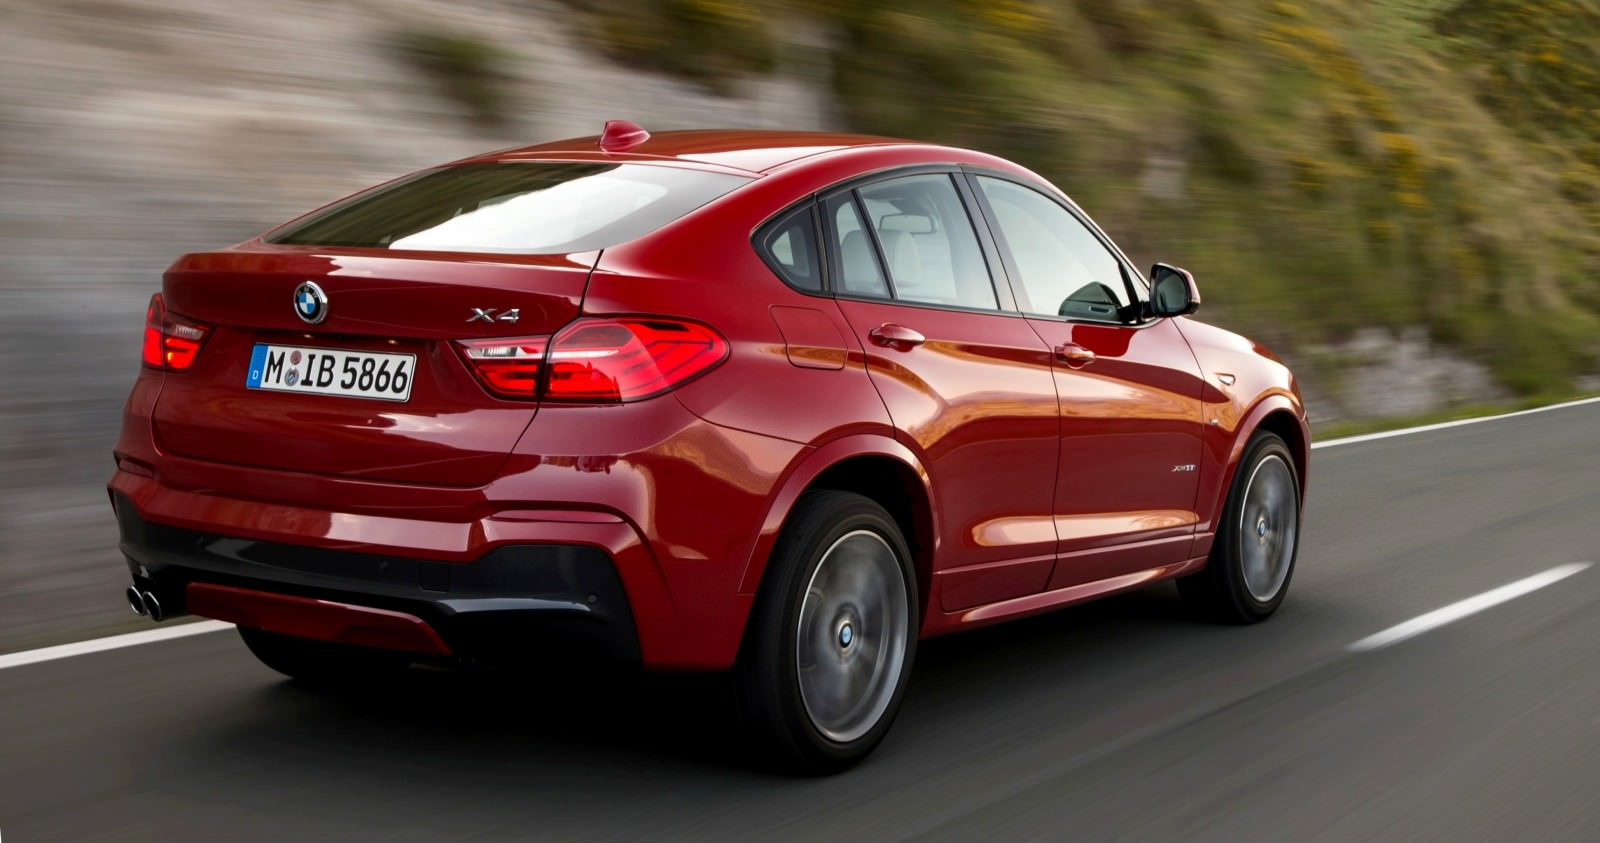 Update2 Debut Photos - 2015 BMW X4 Arriving Now to USA BMW Dealers 28